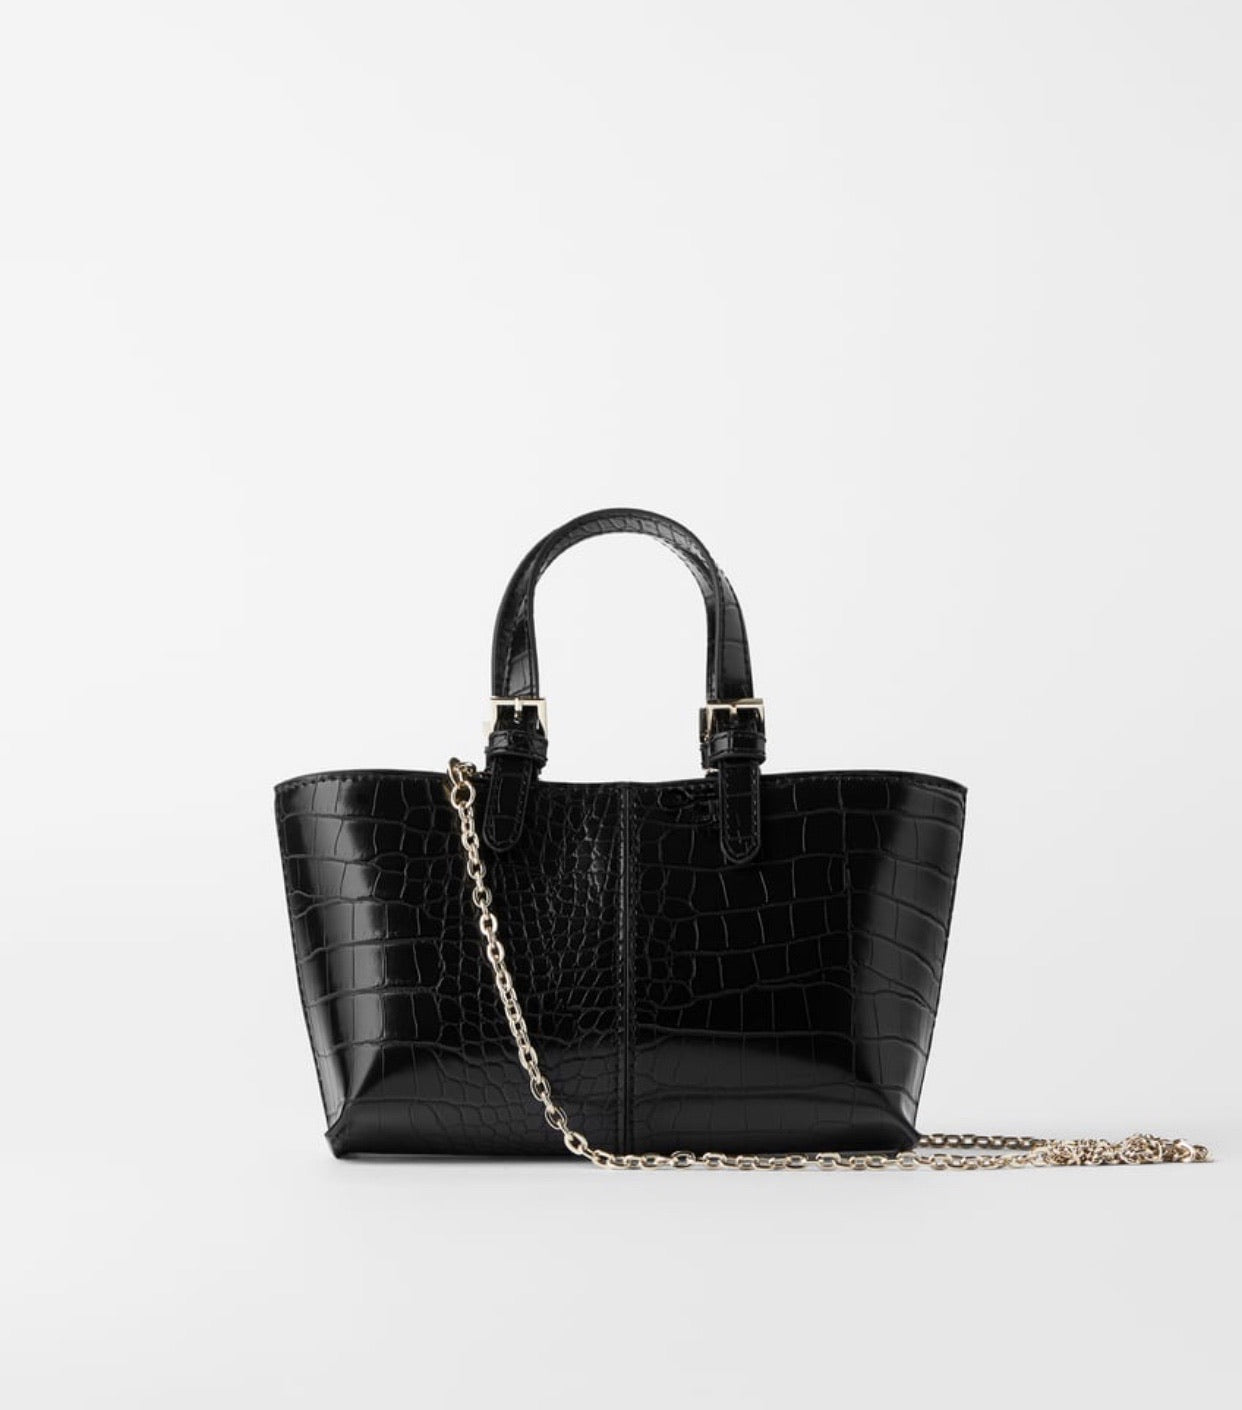 ZARA ANIMAL PRINT MINI TOTE BAG